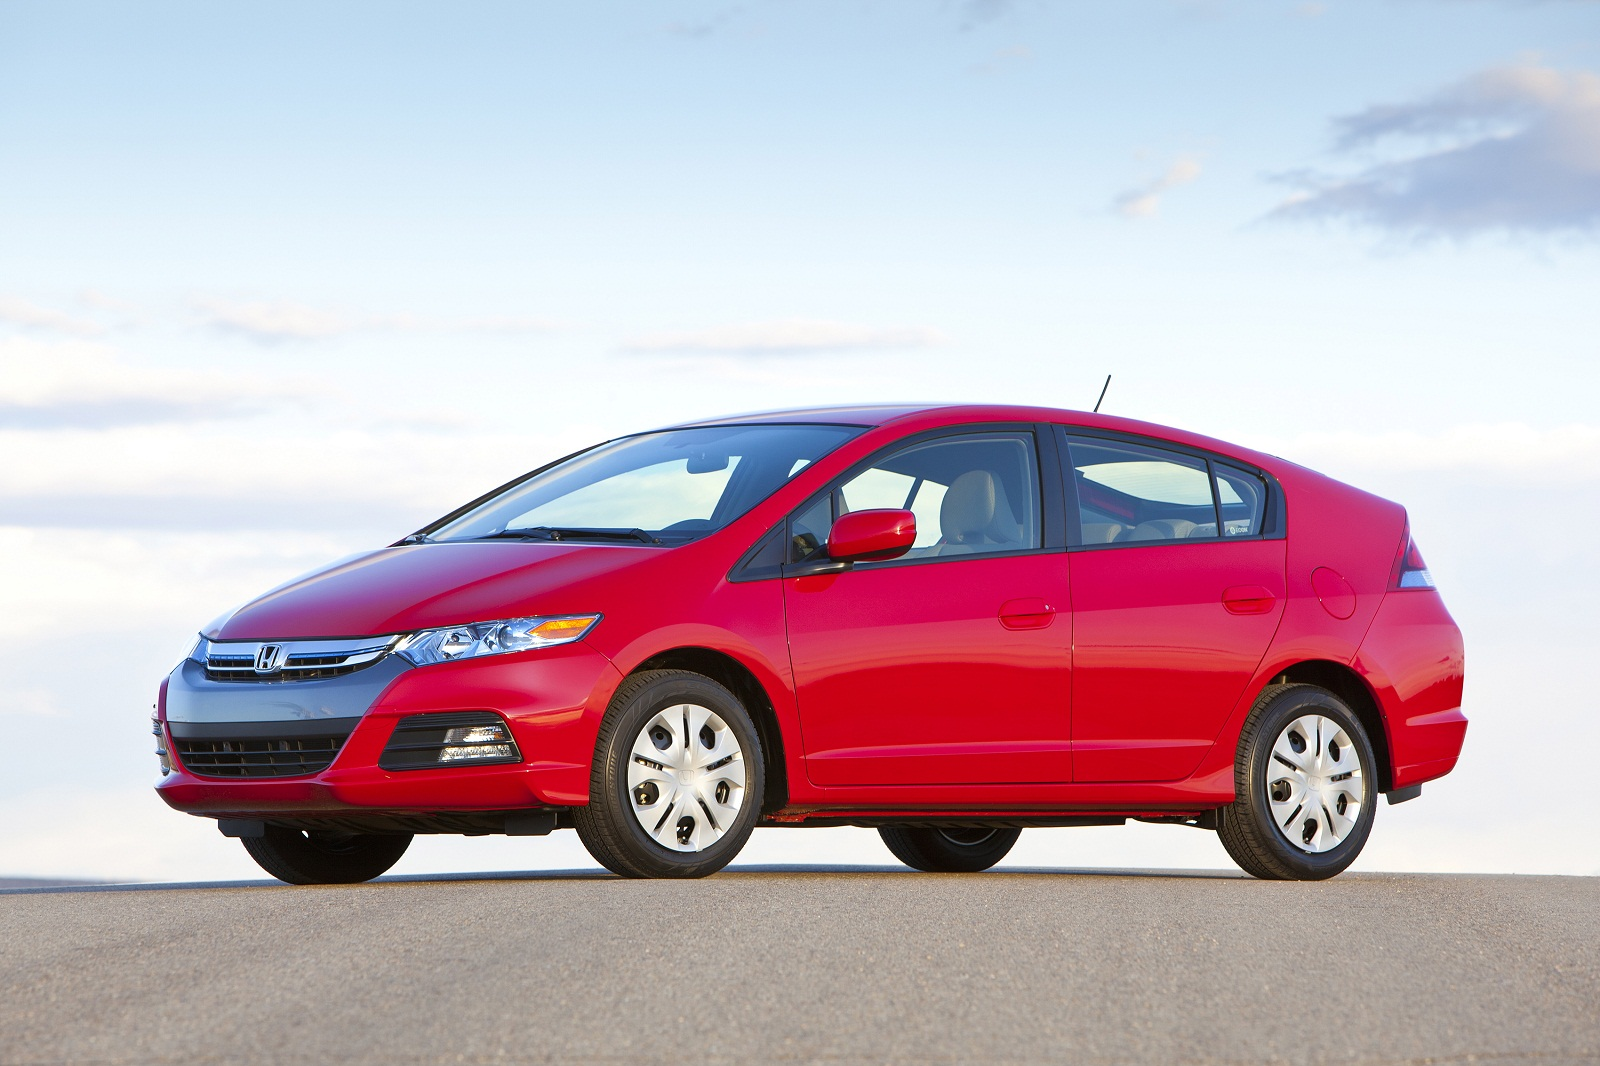 2013 Honda Insight #2